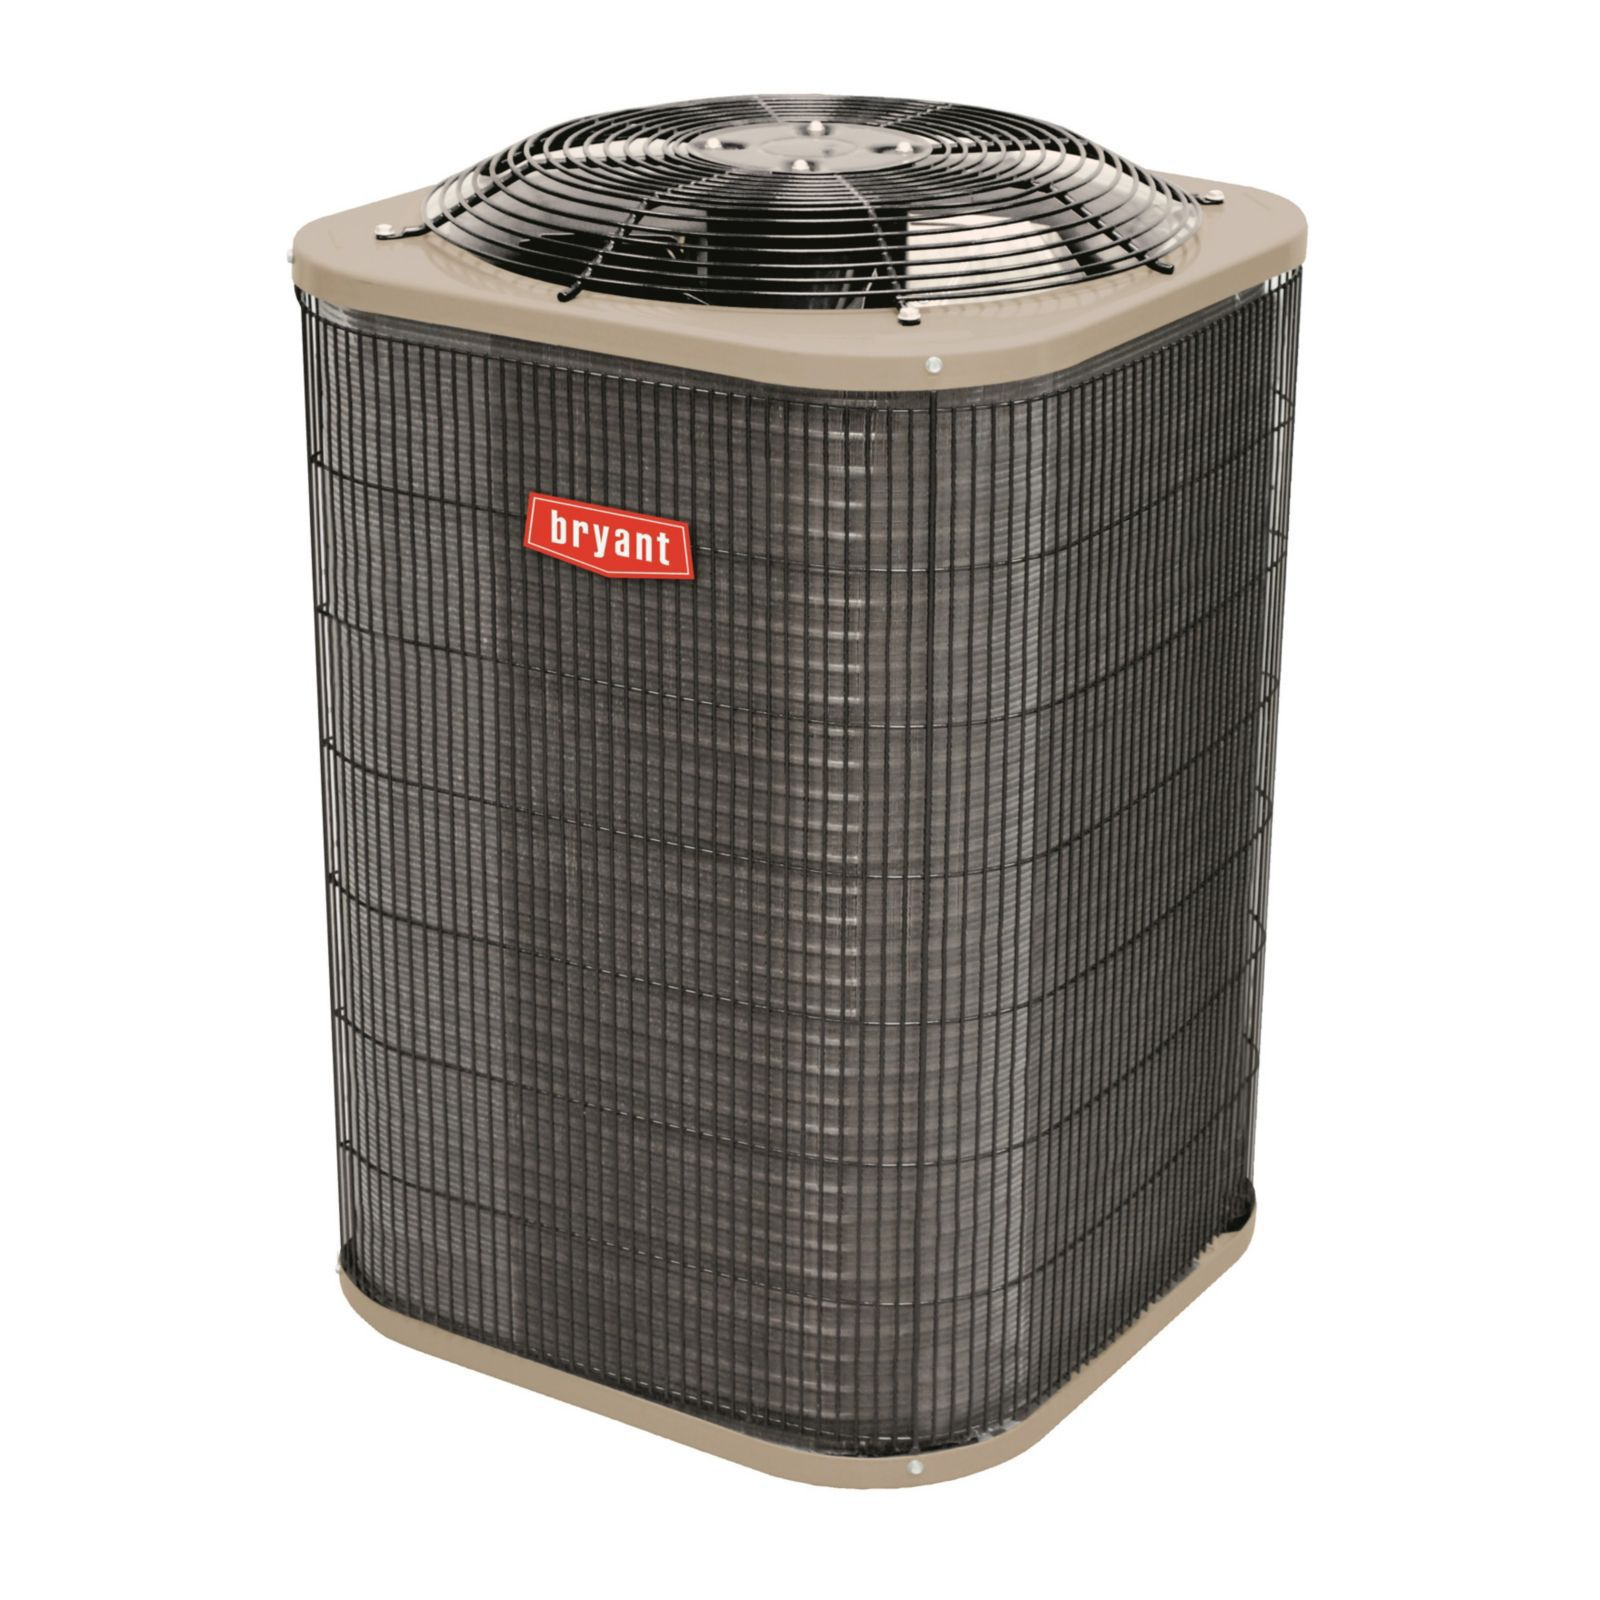 Bryant 214dna030000 heat pump residential condensers carrier hvac bryant legacy 25 ton 14 seer residential heat pump condensing unit sciox Image collections